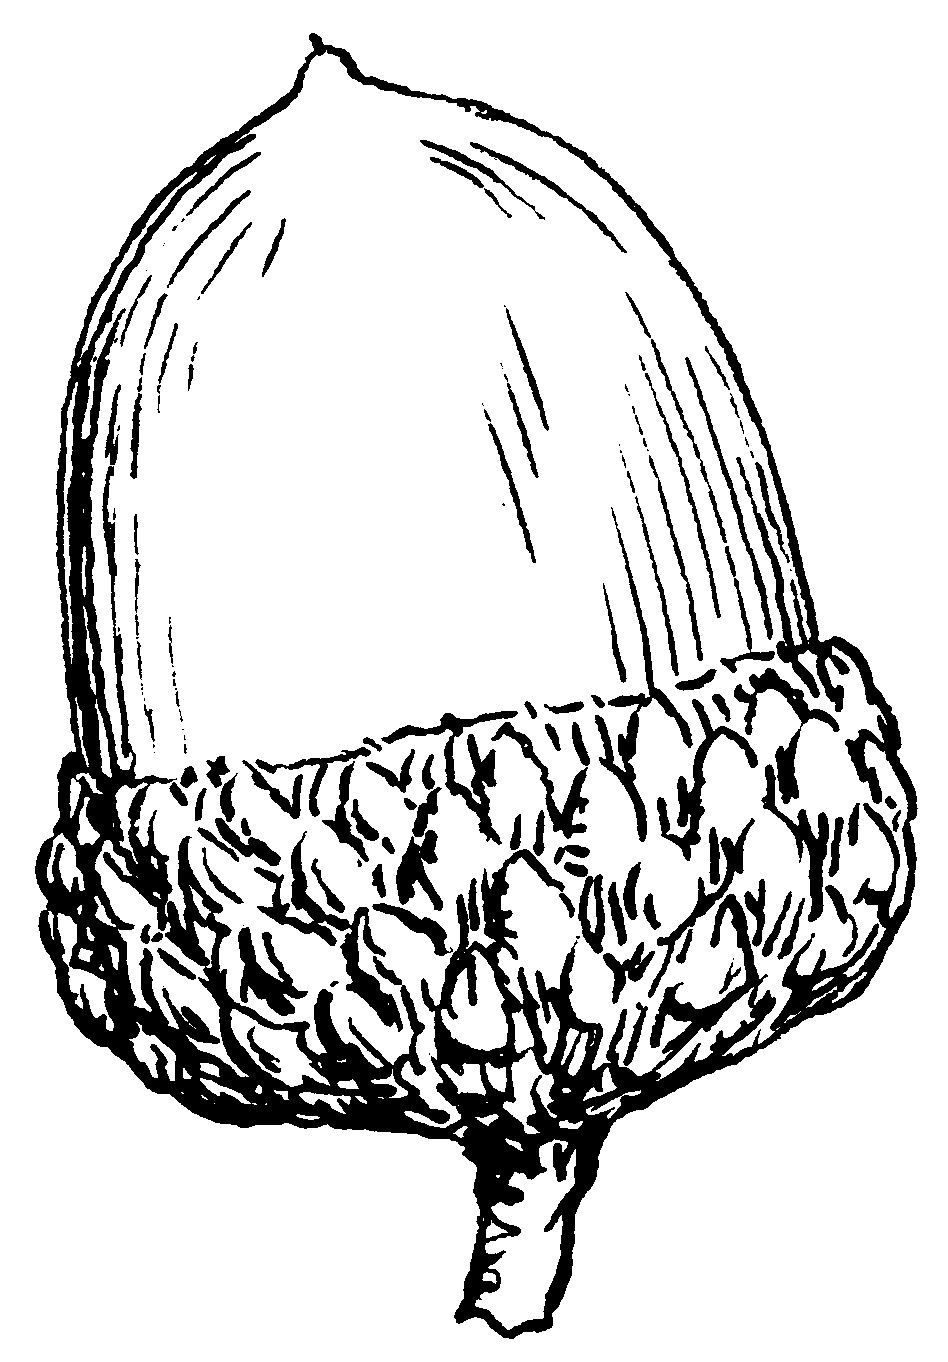 acorn luck symbol the acorn is considered to be an emblem of good